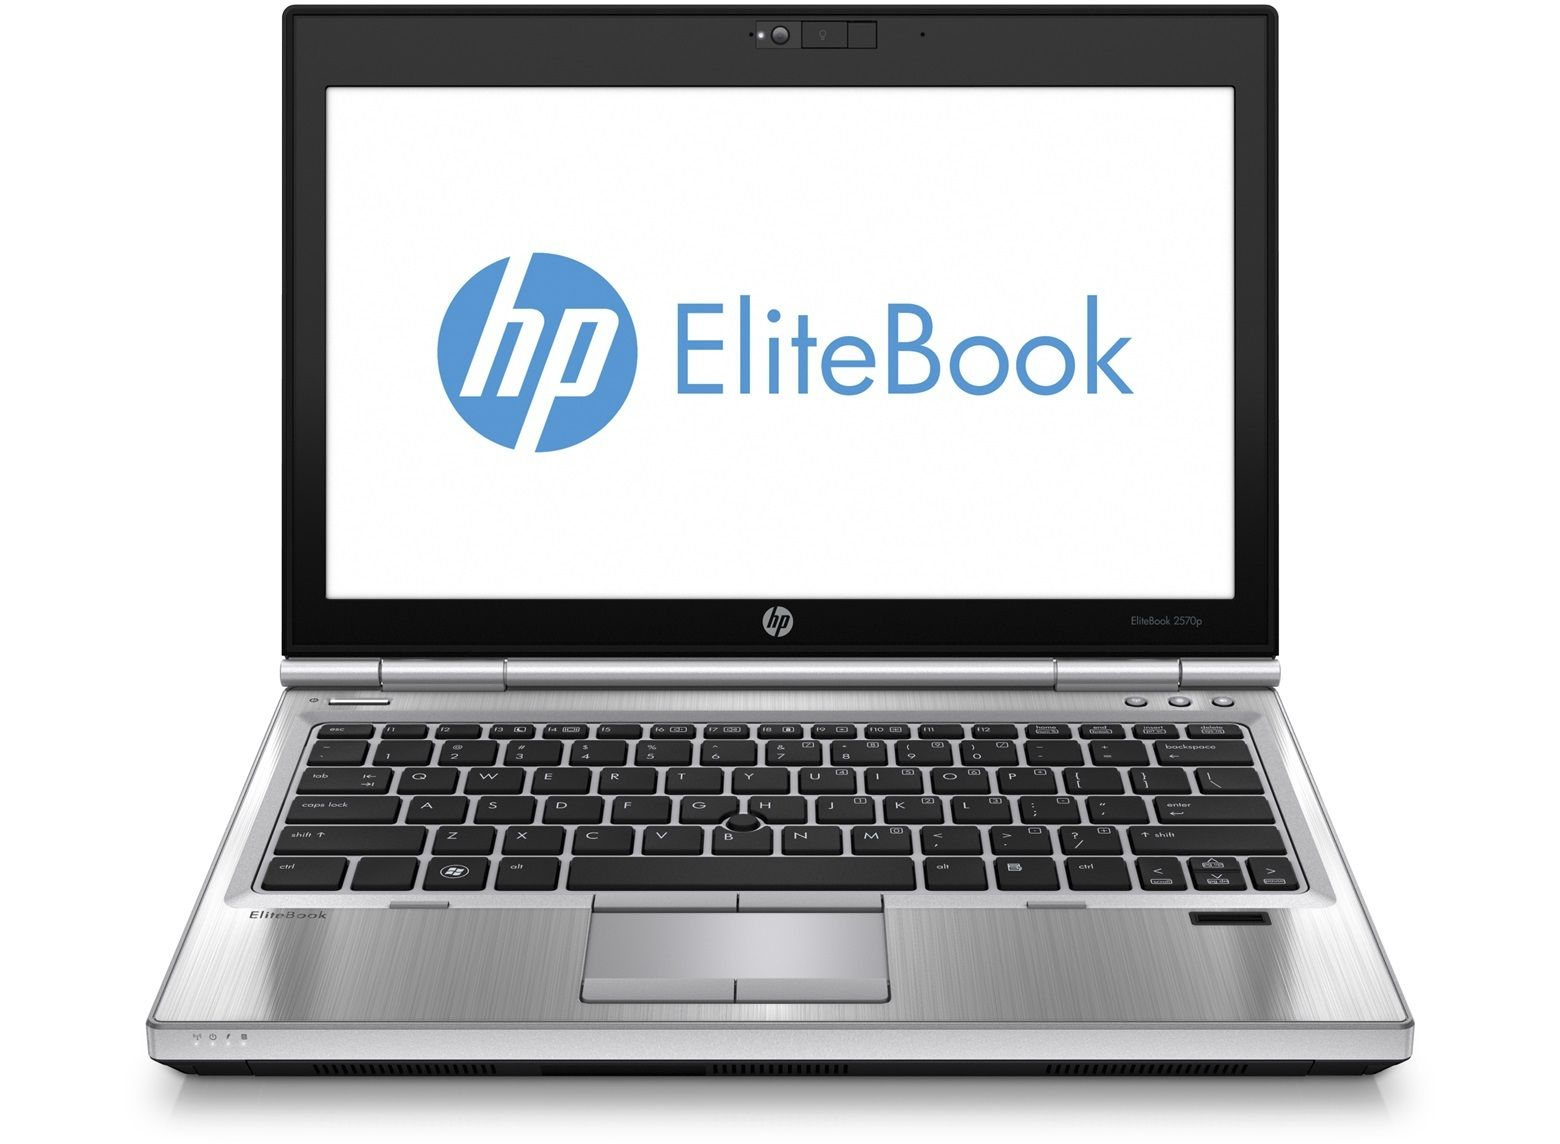 HP EliteBook 2570p / 4 GB / 320GB / Intel i5 2,5 GHz / WINDOWS 10 / A